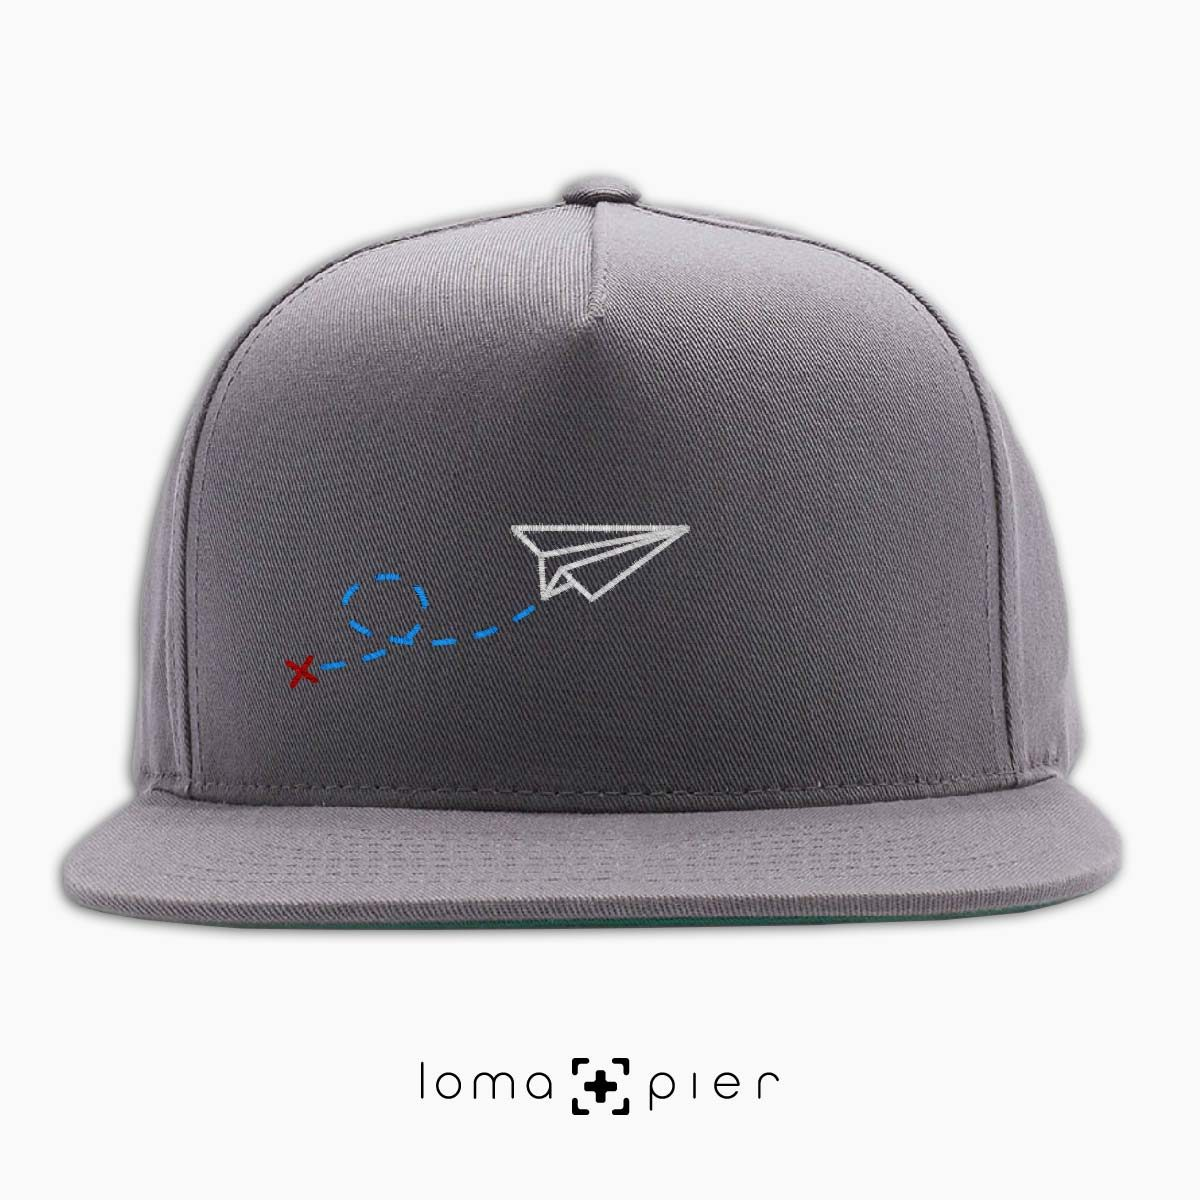 PAPER AIRPLANE icon embroidered on a grey classic snapback hat by loma+pier hat store